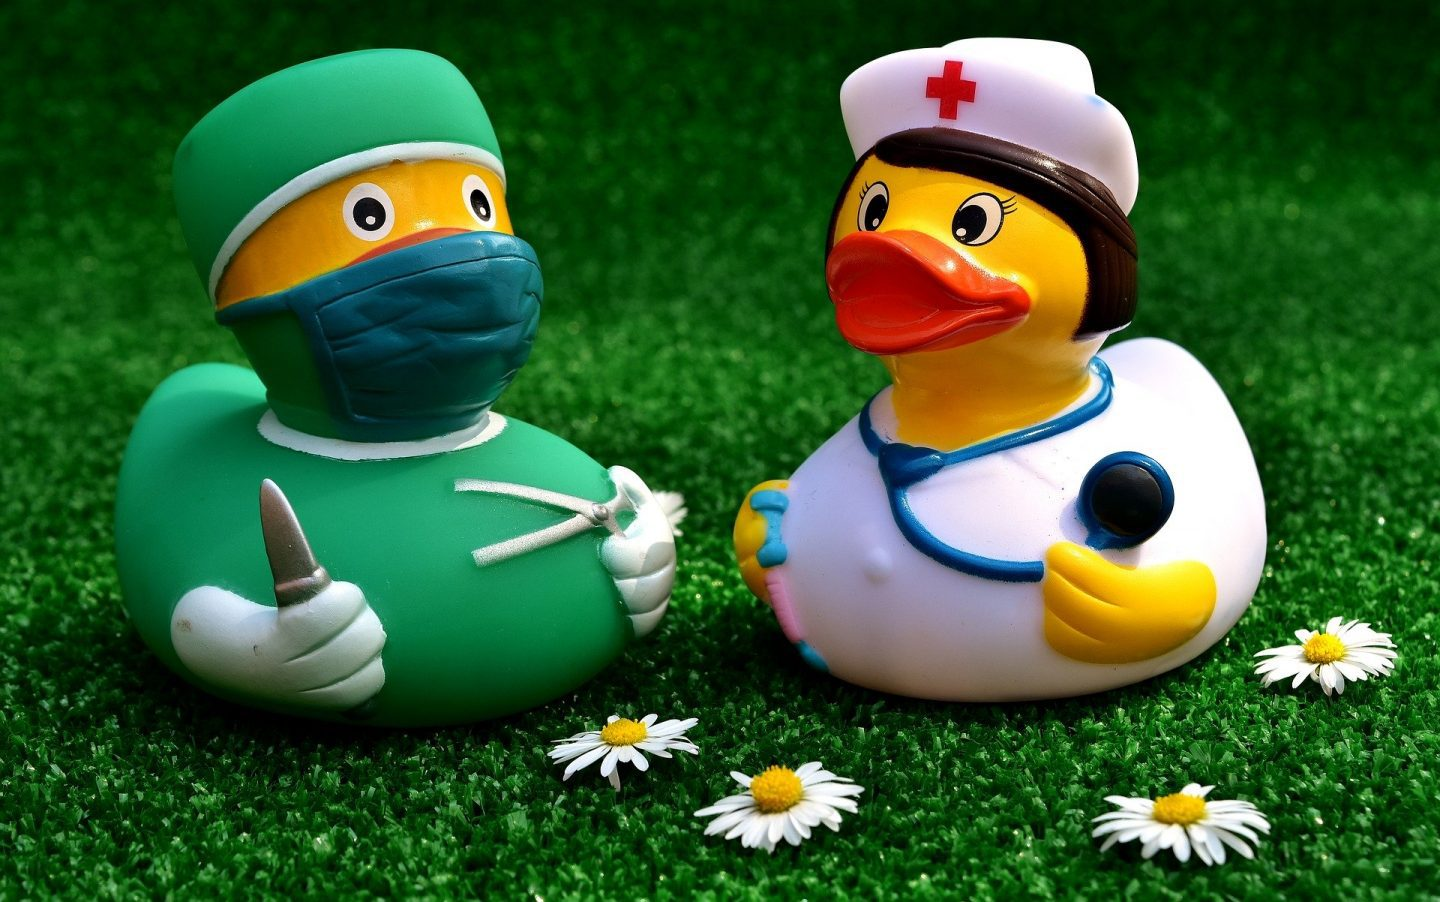 2 rubber ducks, one dressed as a surgeon and one dressed as a nurse